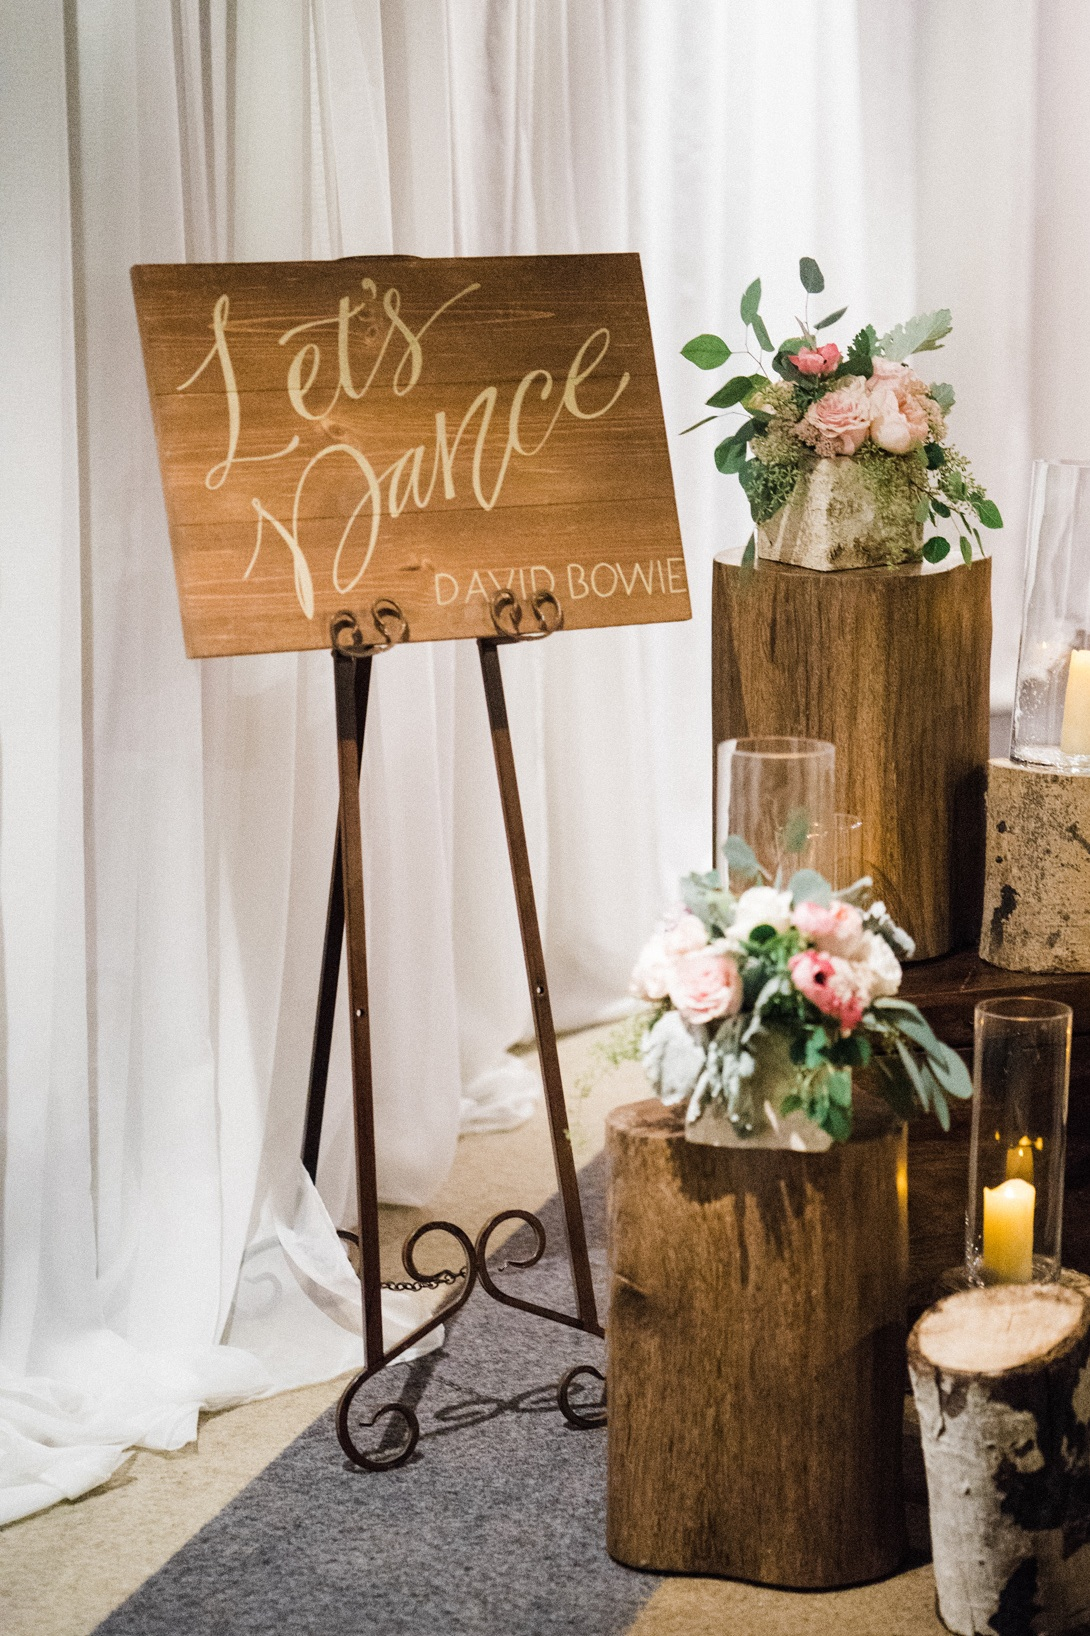 Hand-lettered wedding dance floor signage on stained wood | www.chavelli.com